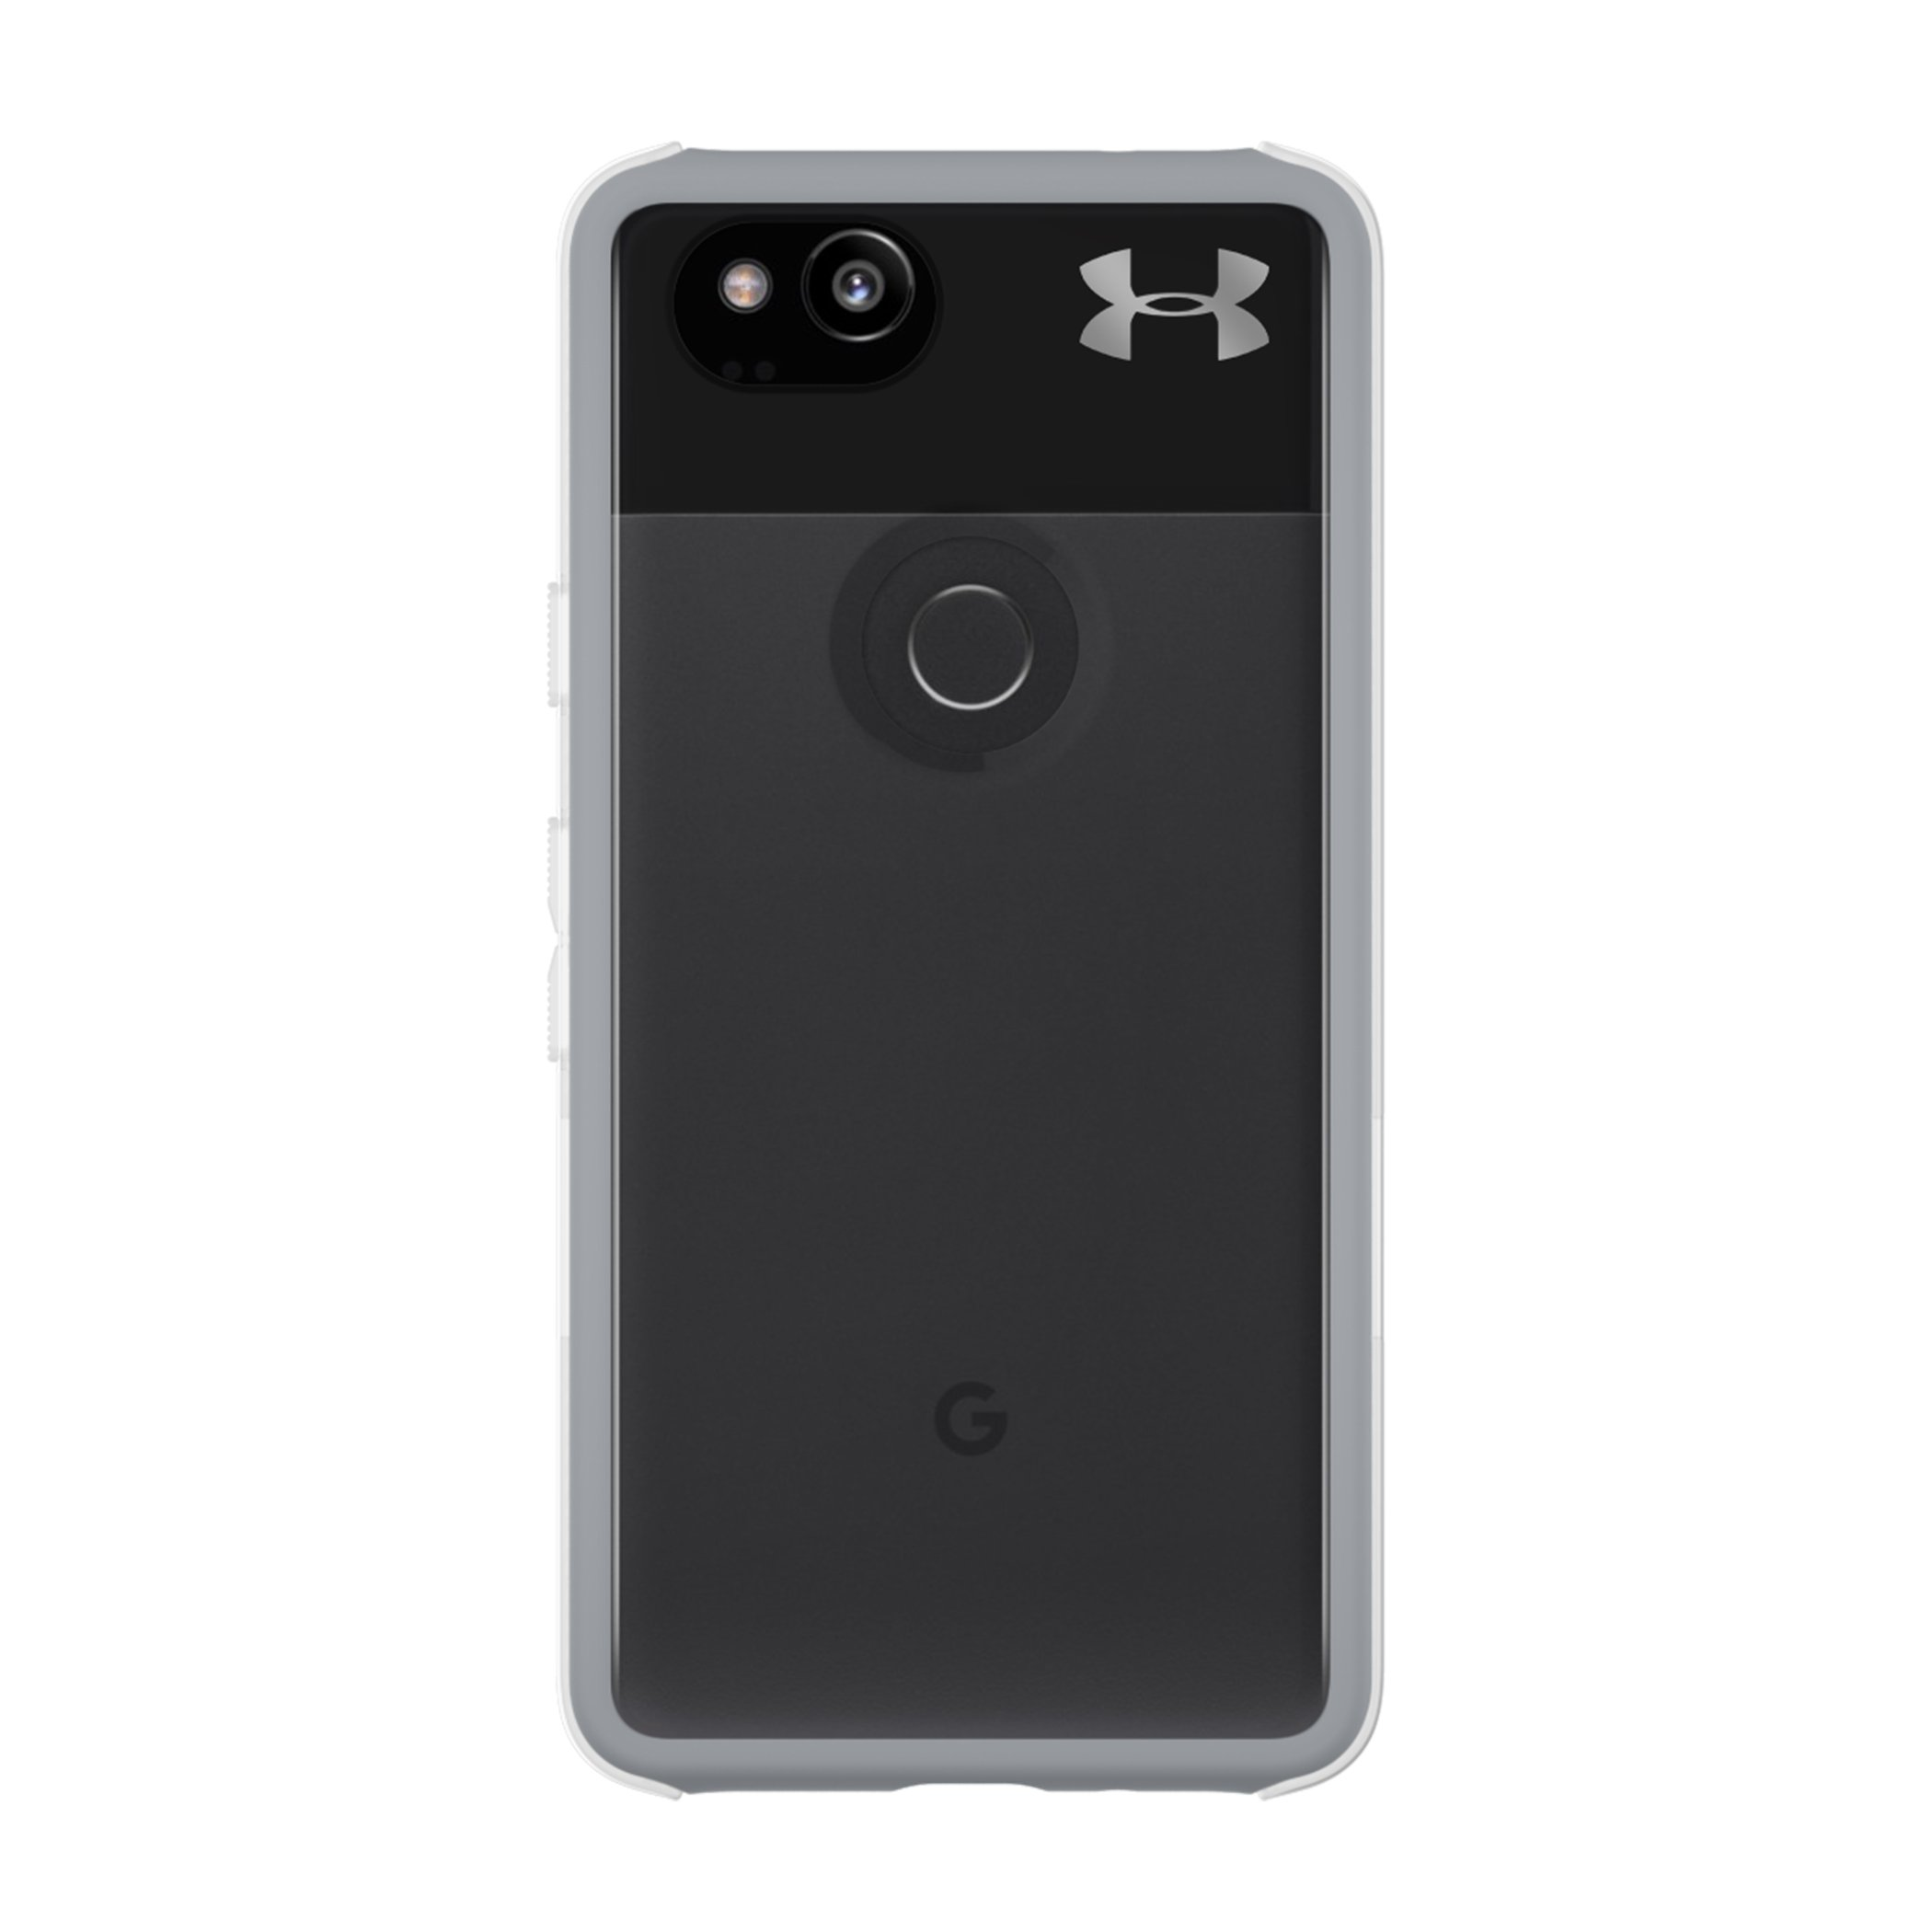 Under Armour UA Protect Verge Case for Google Pixel 2 - Clear/Cool Gray 10C / Gunmetal Logo